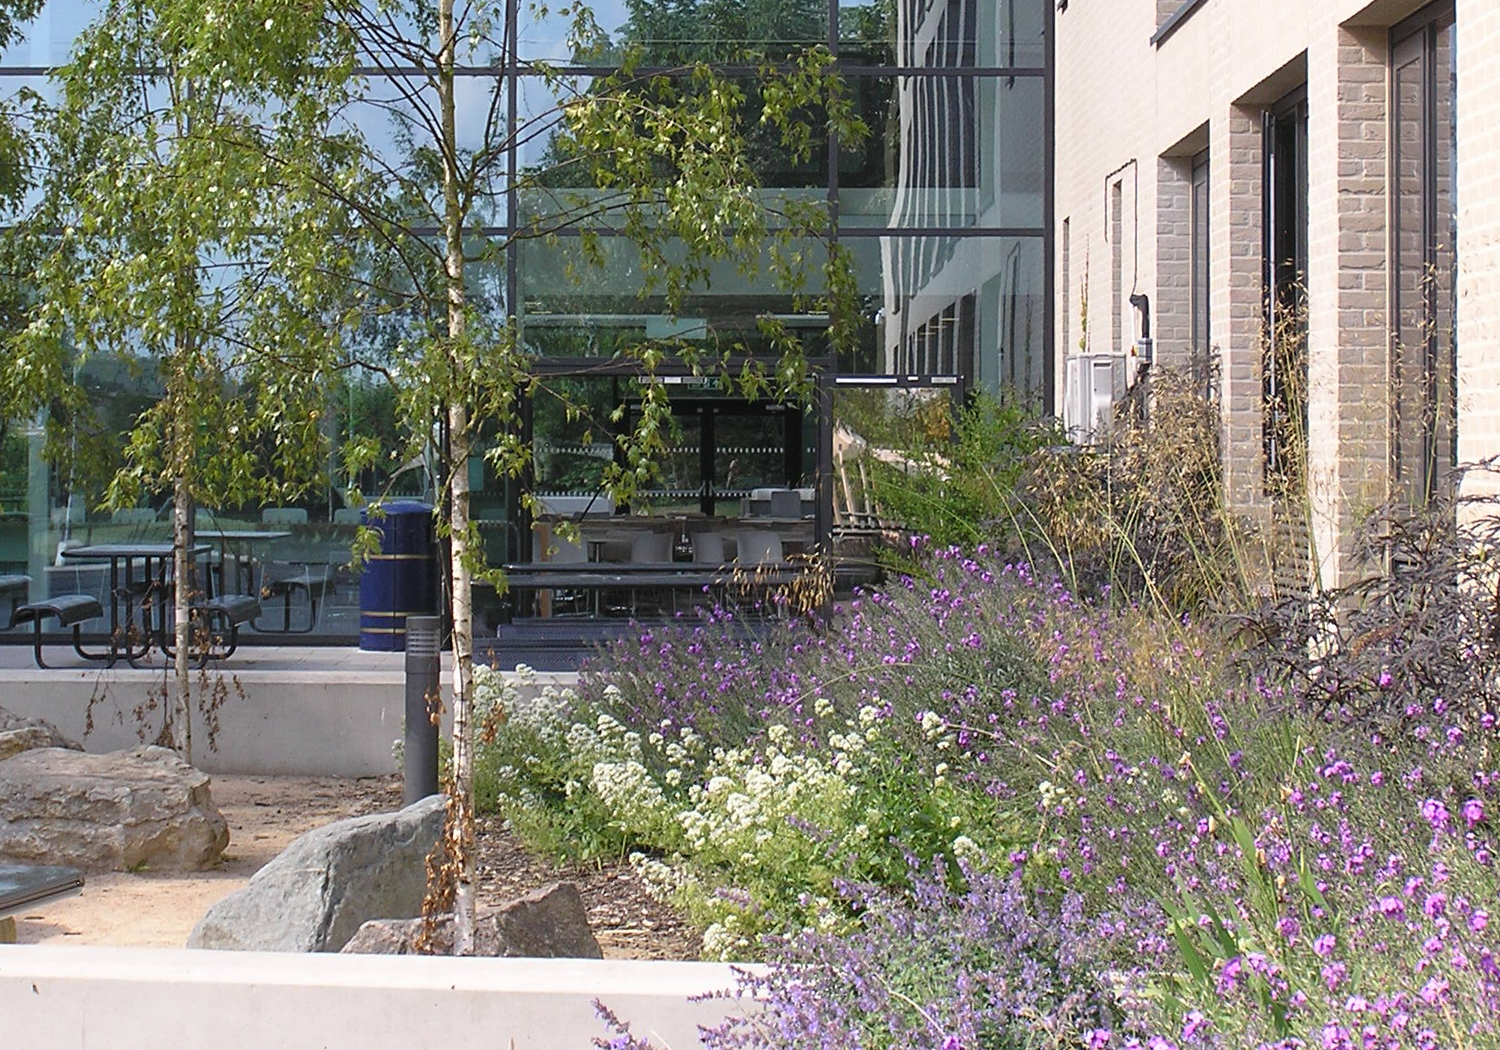 Projects-Education-Strood-Planting-1500x1050